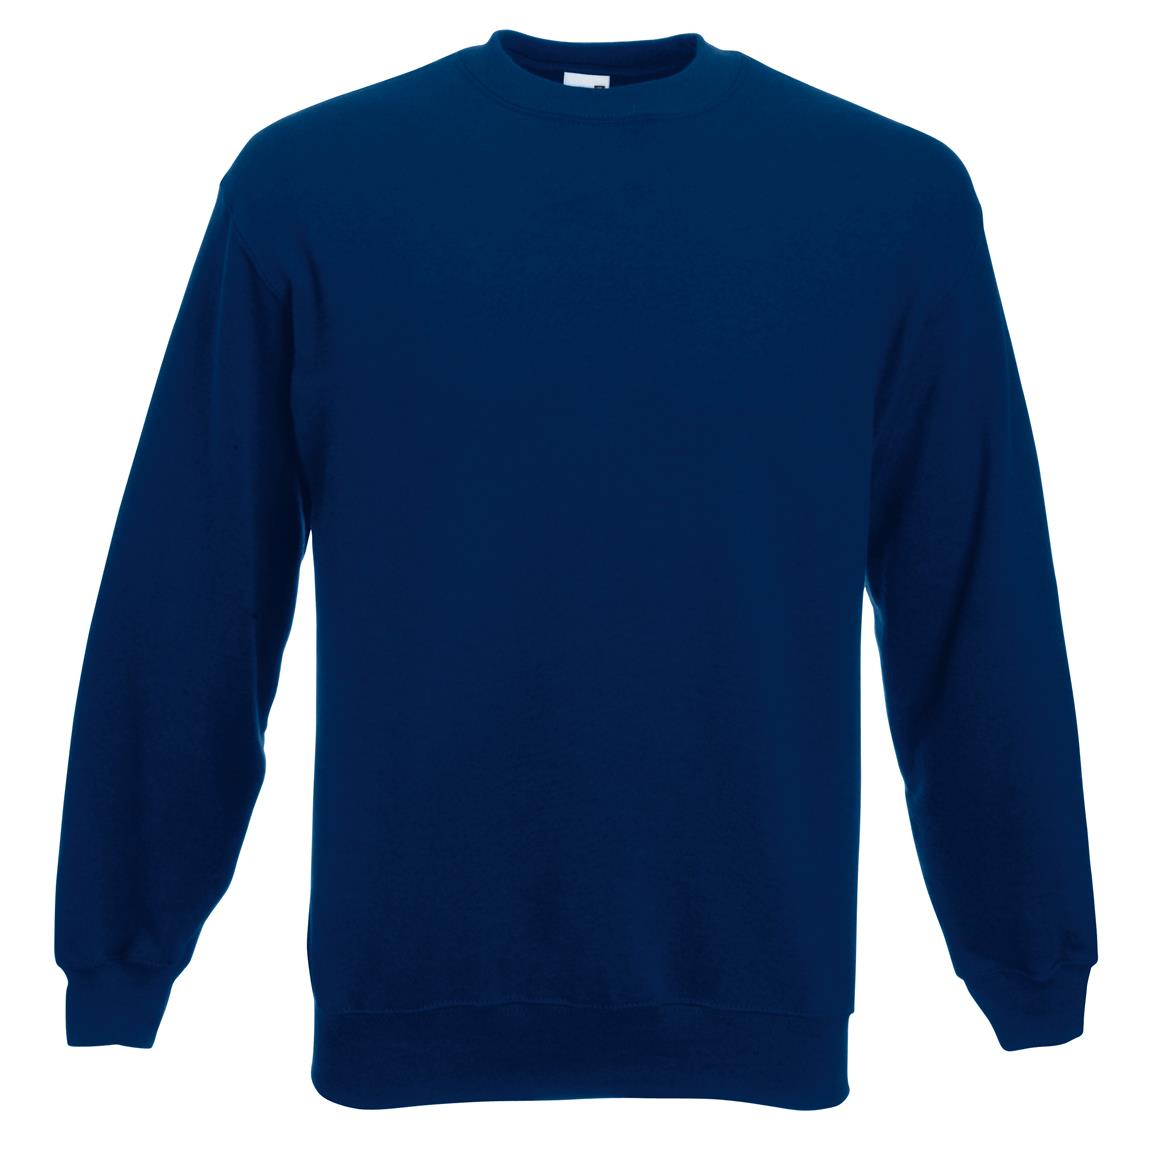 Mens Set-in Sweat Sweatshirt Fruit Of The Loom Outlet Cheap Online Buy Cheap Amazon Discount For Nice Websites Cheap Online WWvXb7rLM